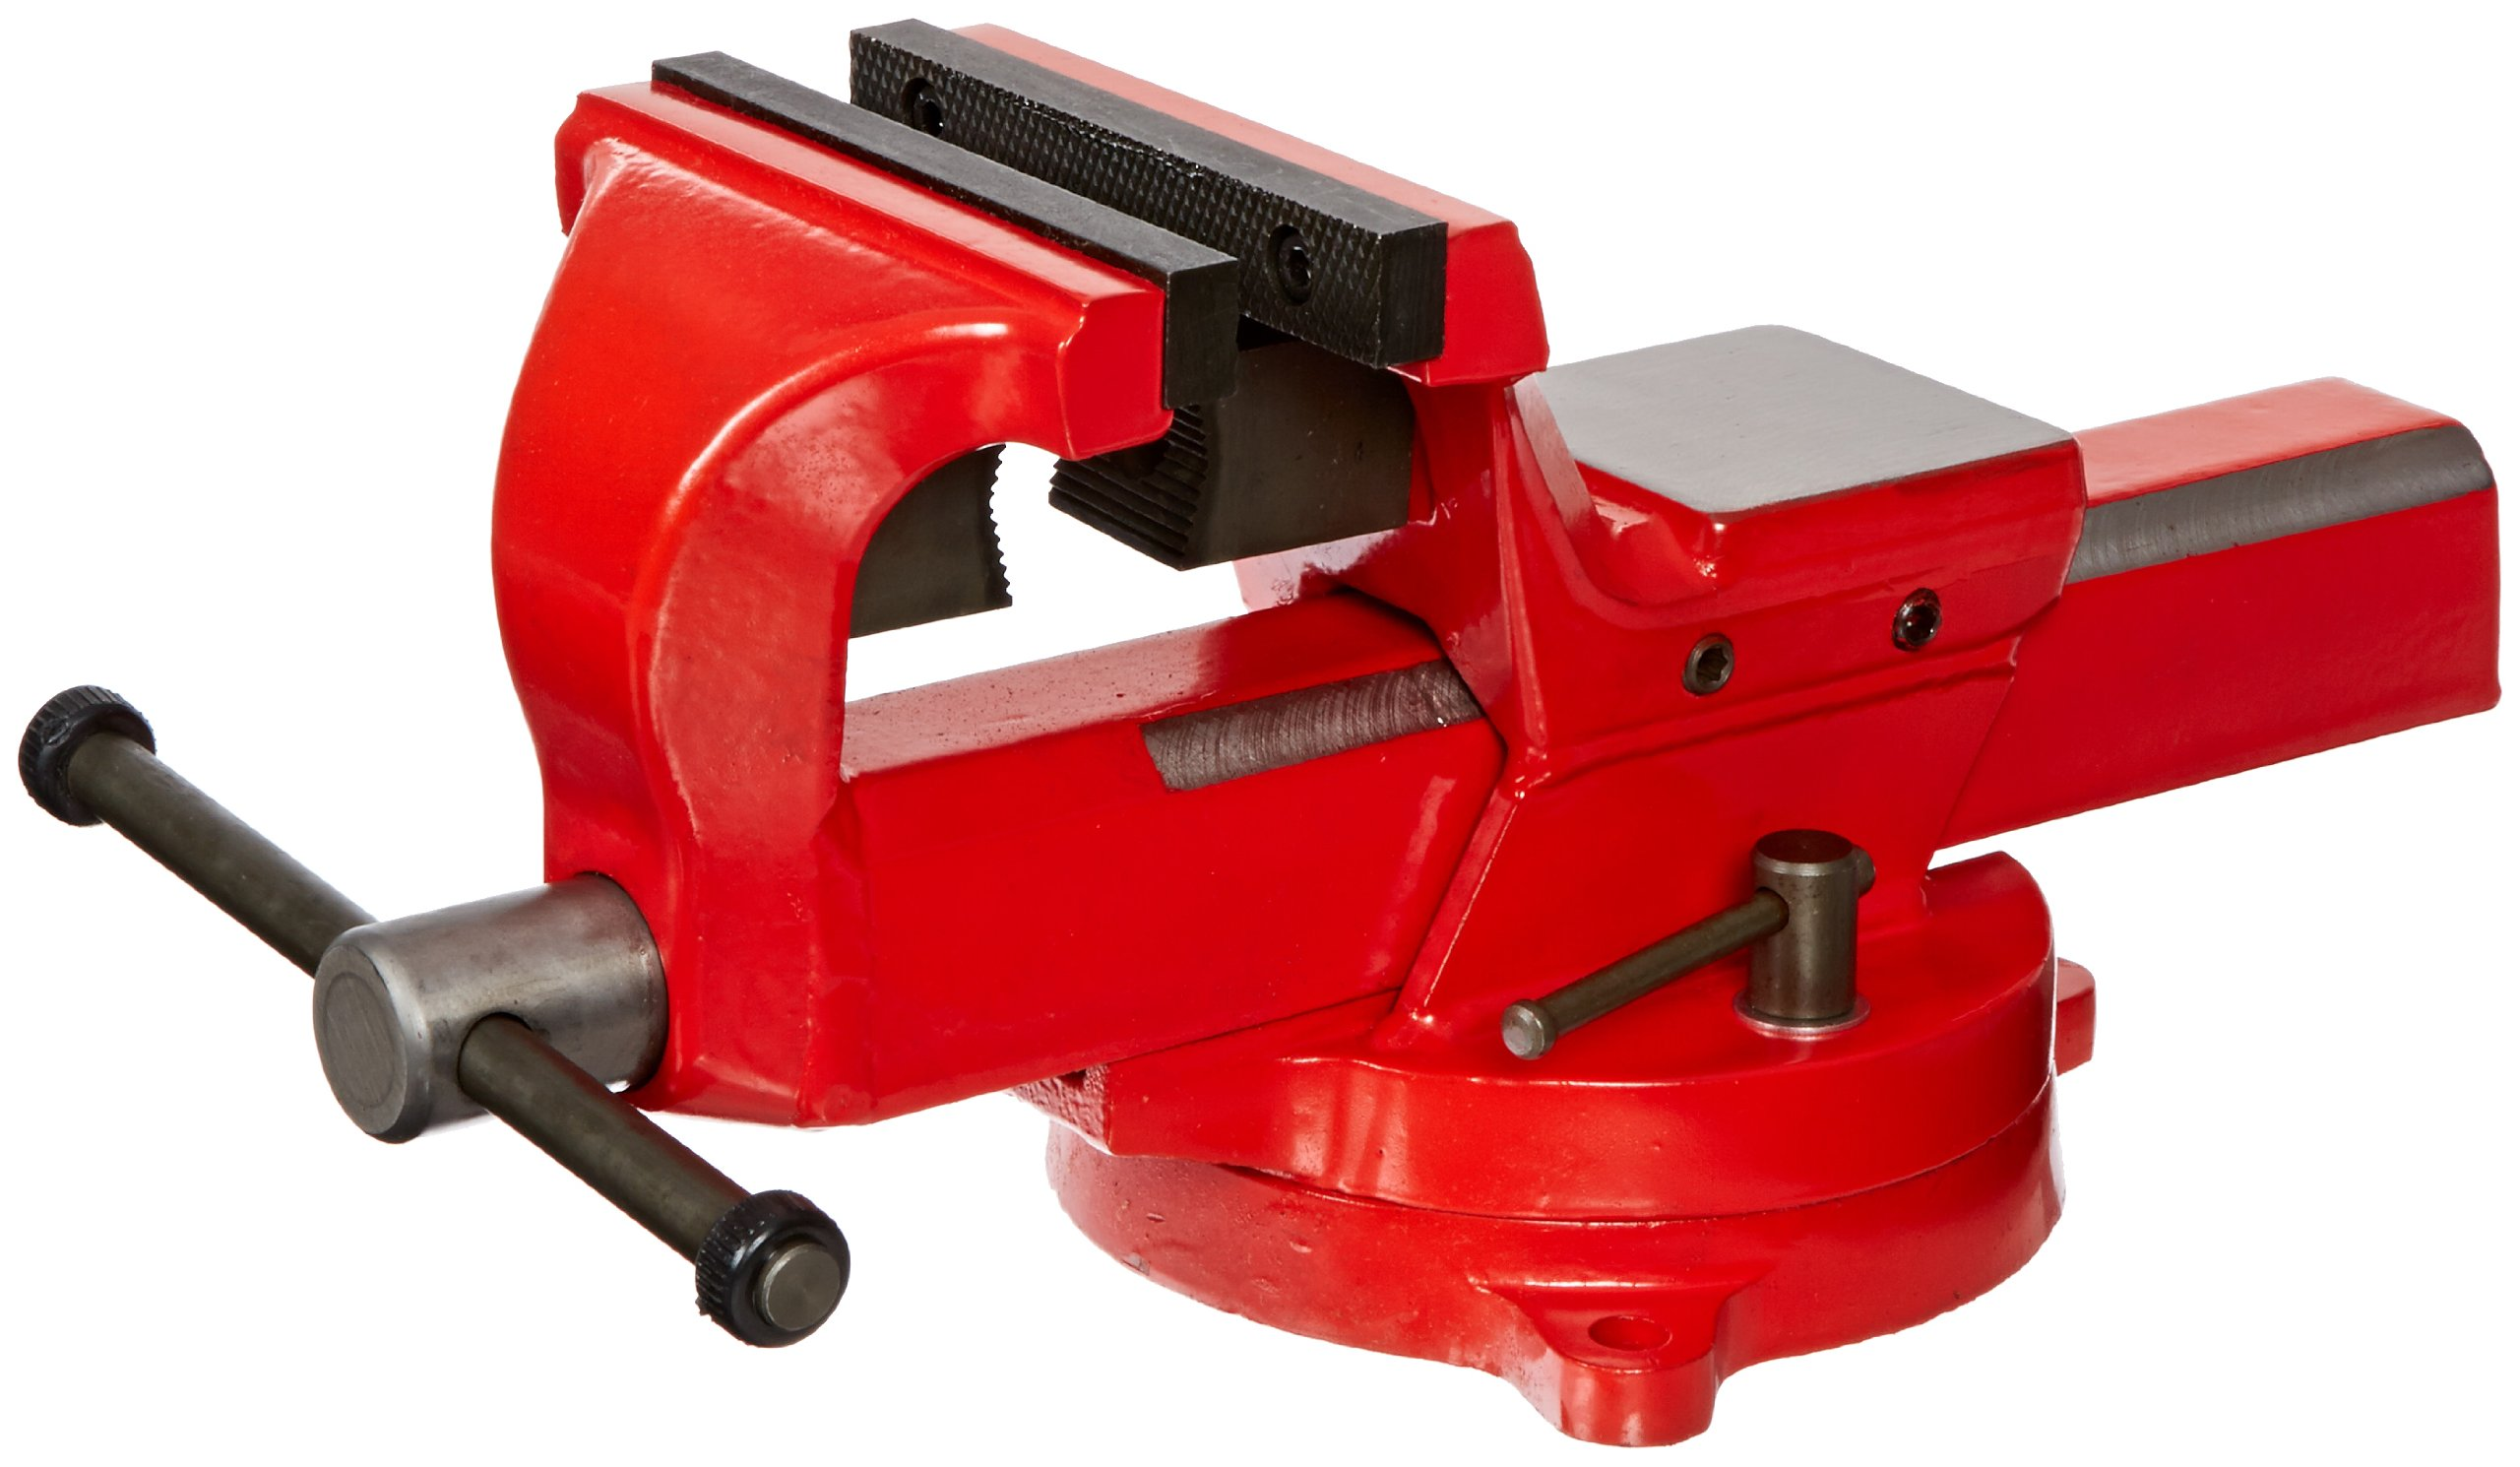 Yost Vises FSV-5 5'' Heavy-Duty Forged Steel Bench Vise with 360-Degree Swivel Base by Yost Tools